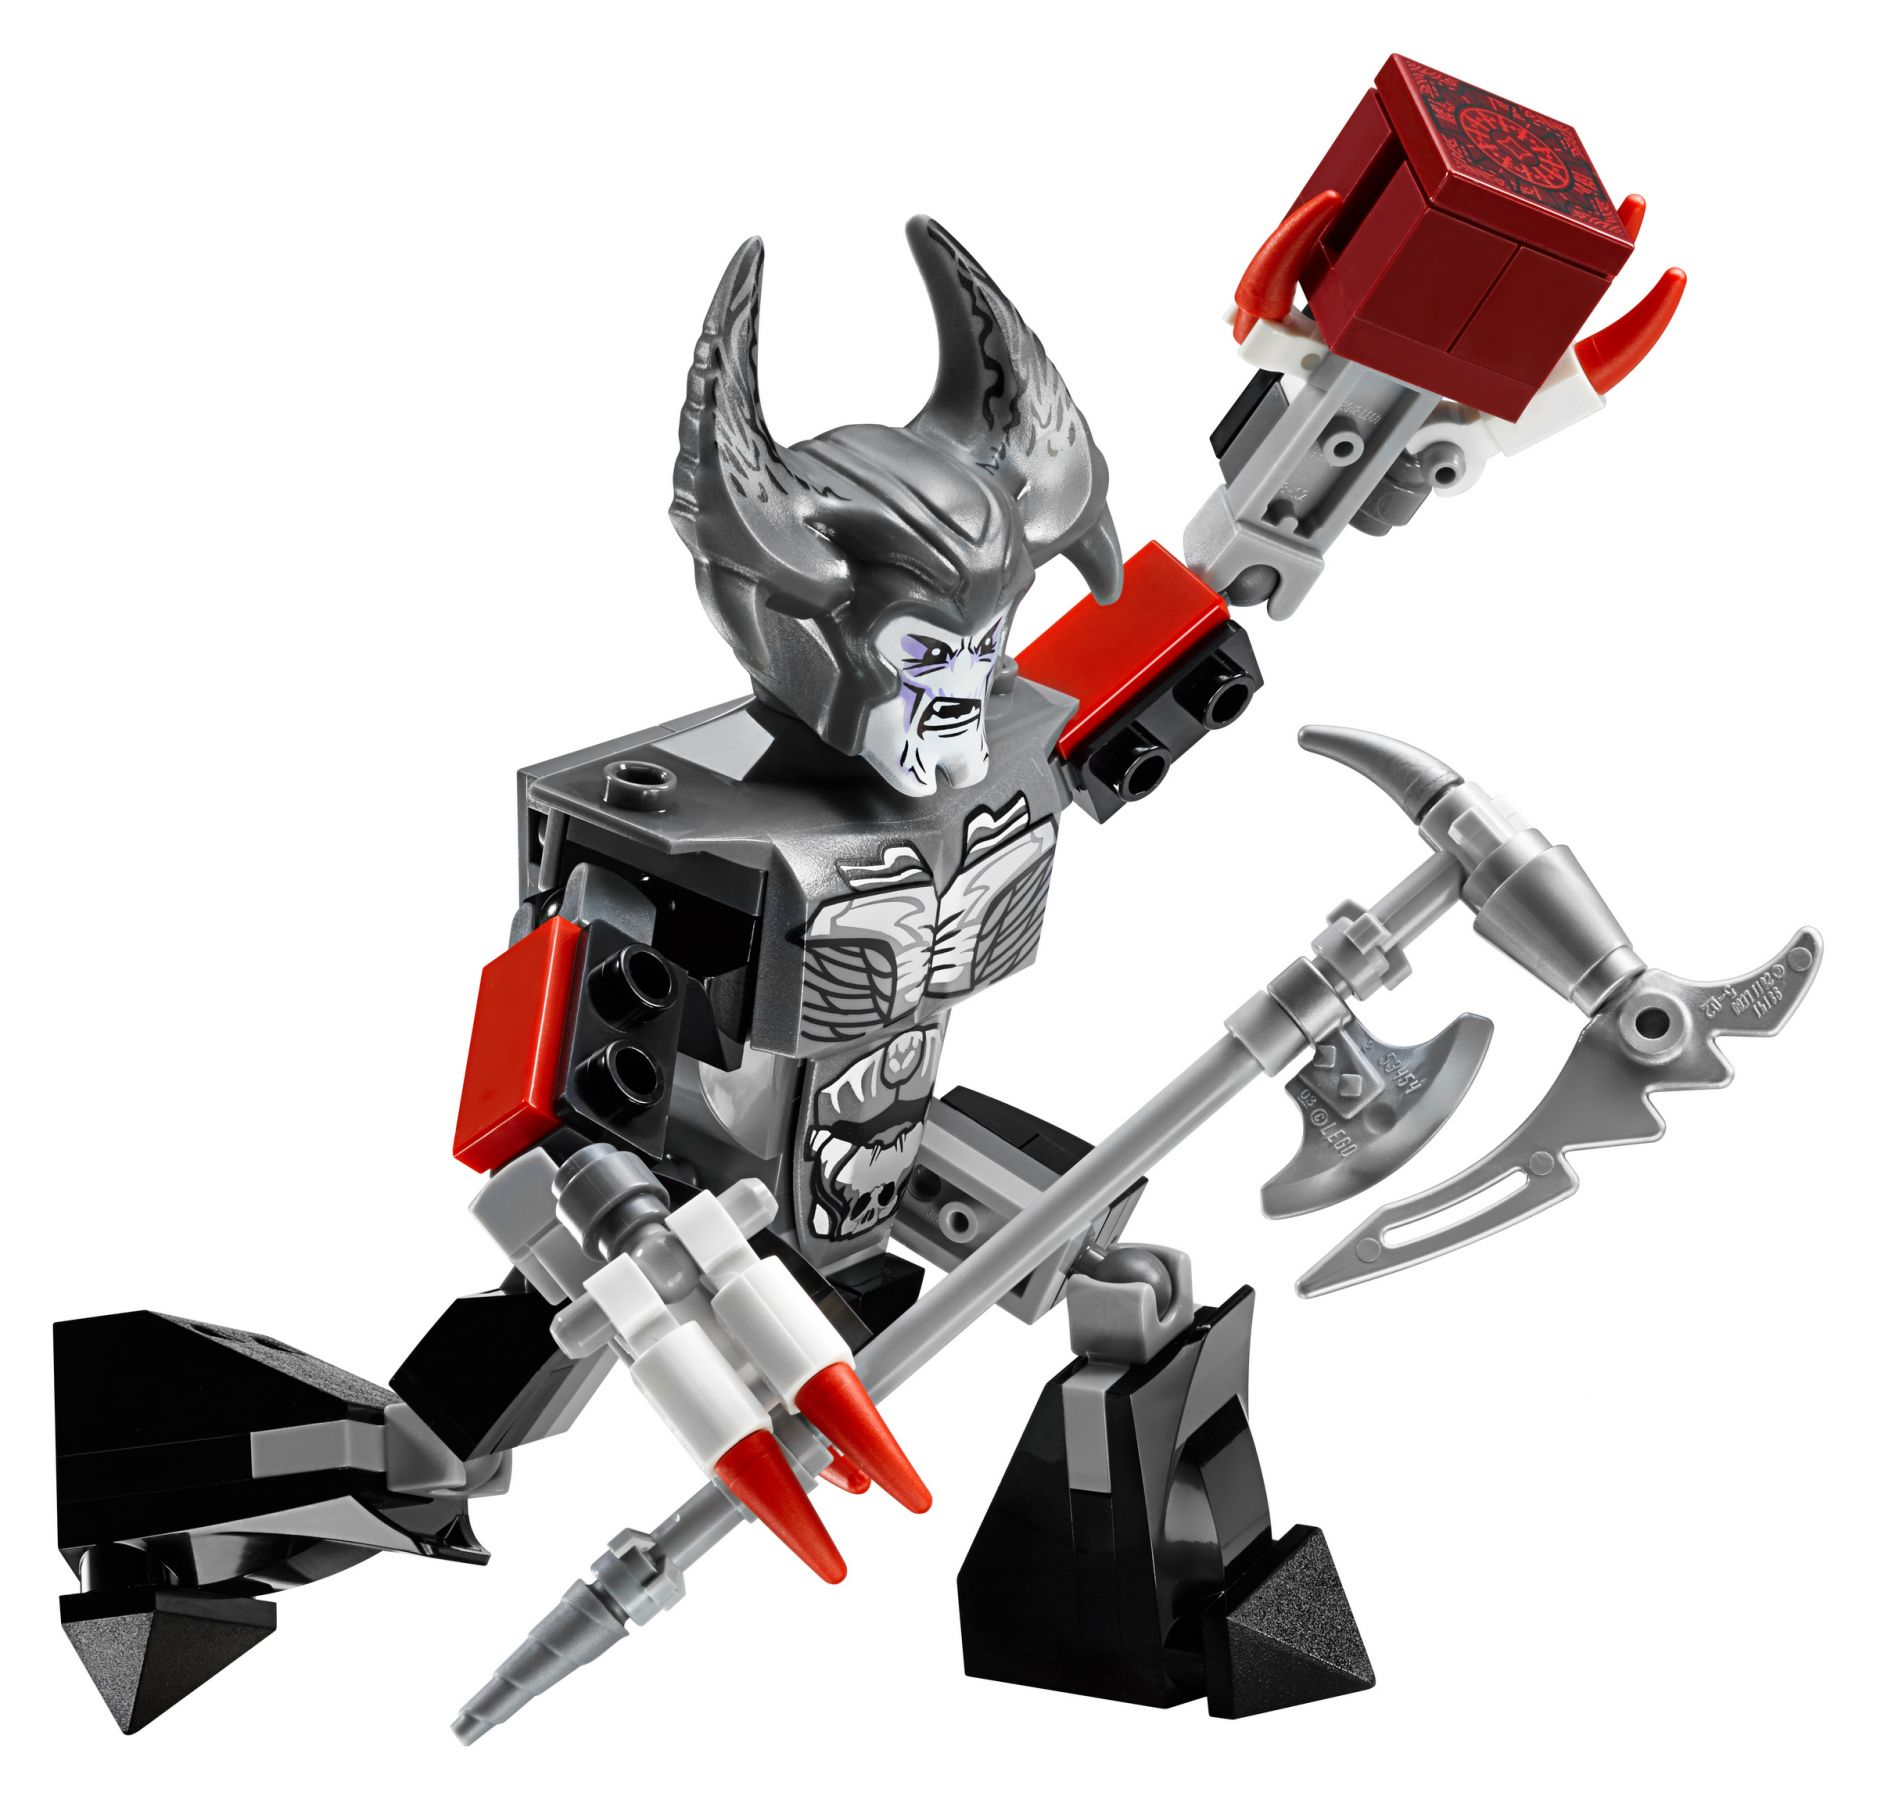 LEGO Super Heroes 76087 Flying Fox: Batmobil-Attacke aus der Luft LEGO_76087_alt16.jpg